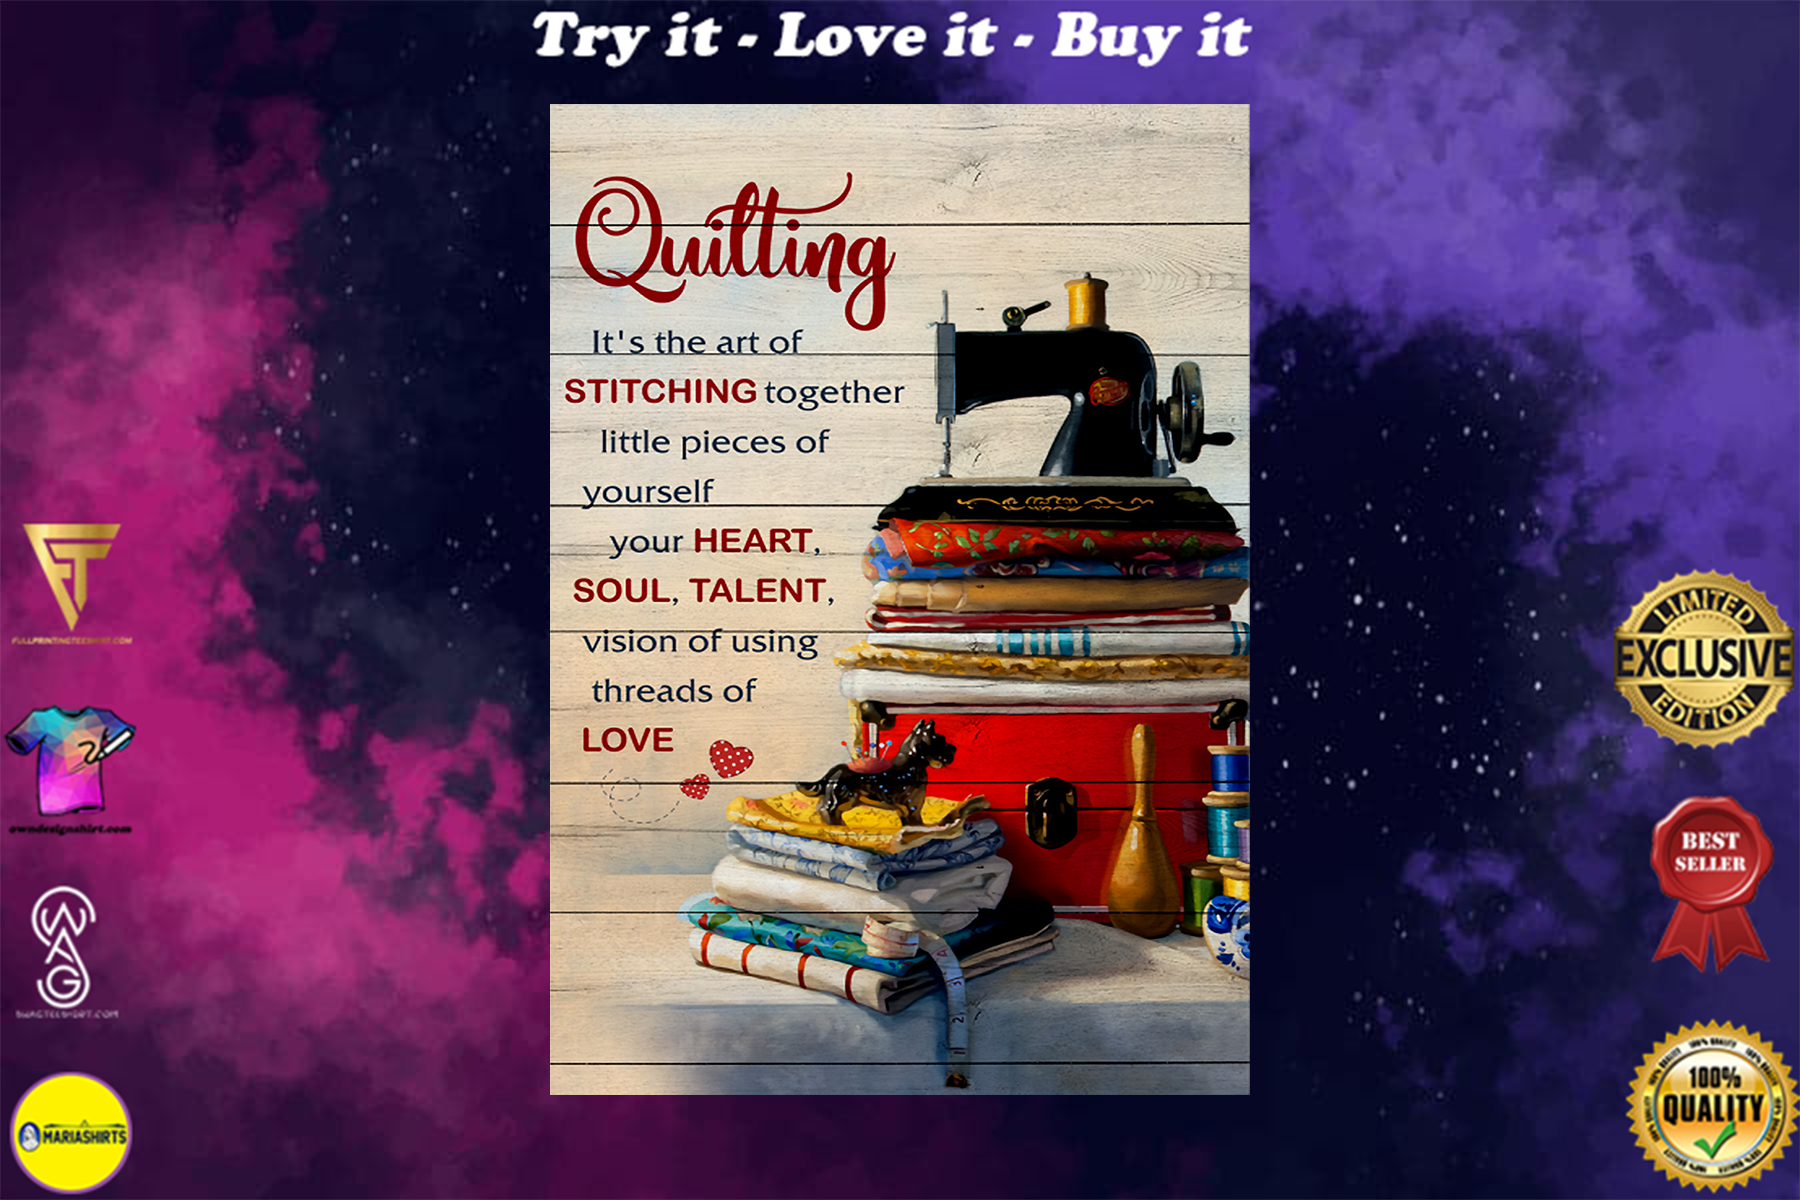 quilting its the art of stitching together vintage poster